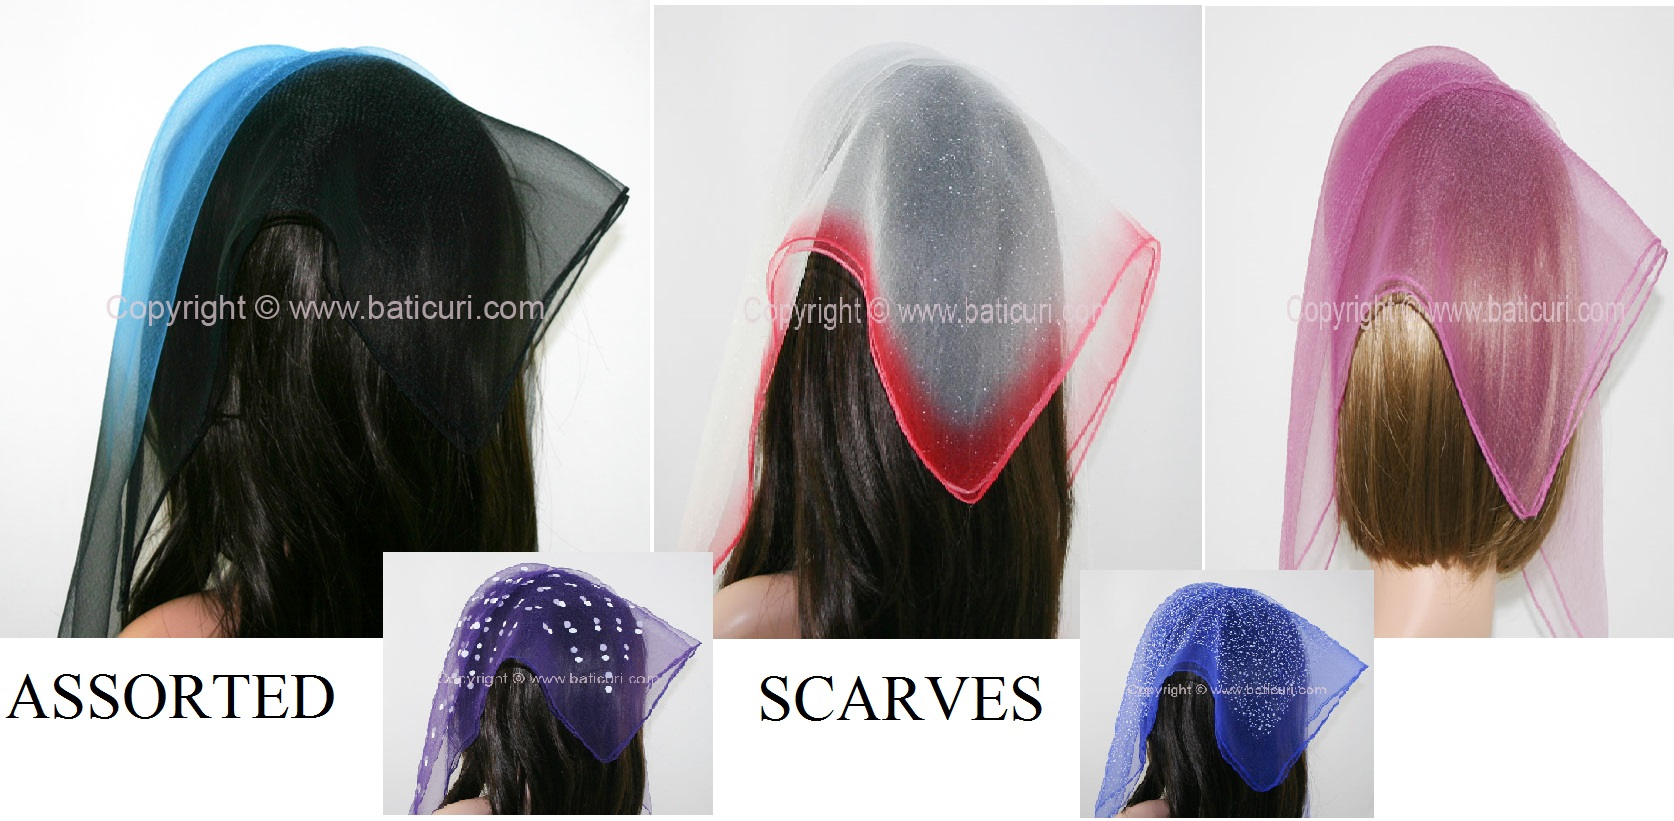 **Nylon Square Scarves